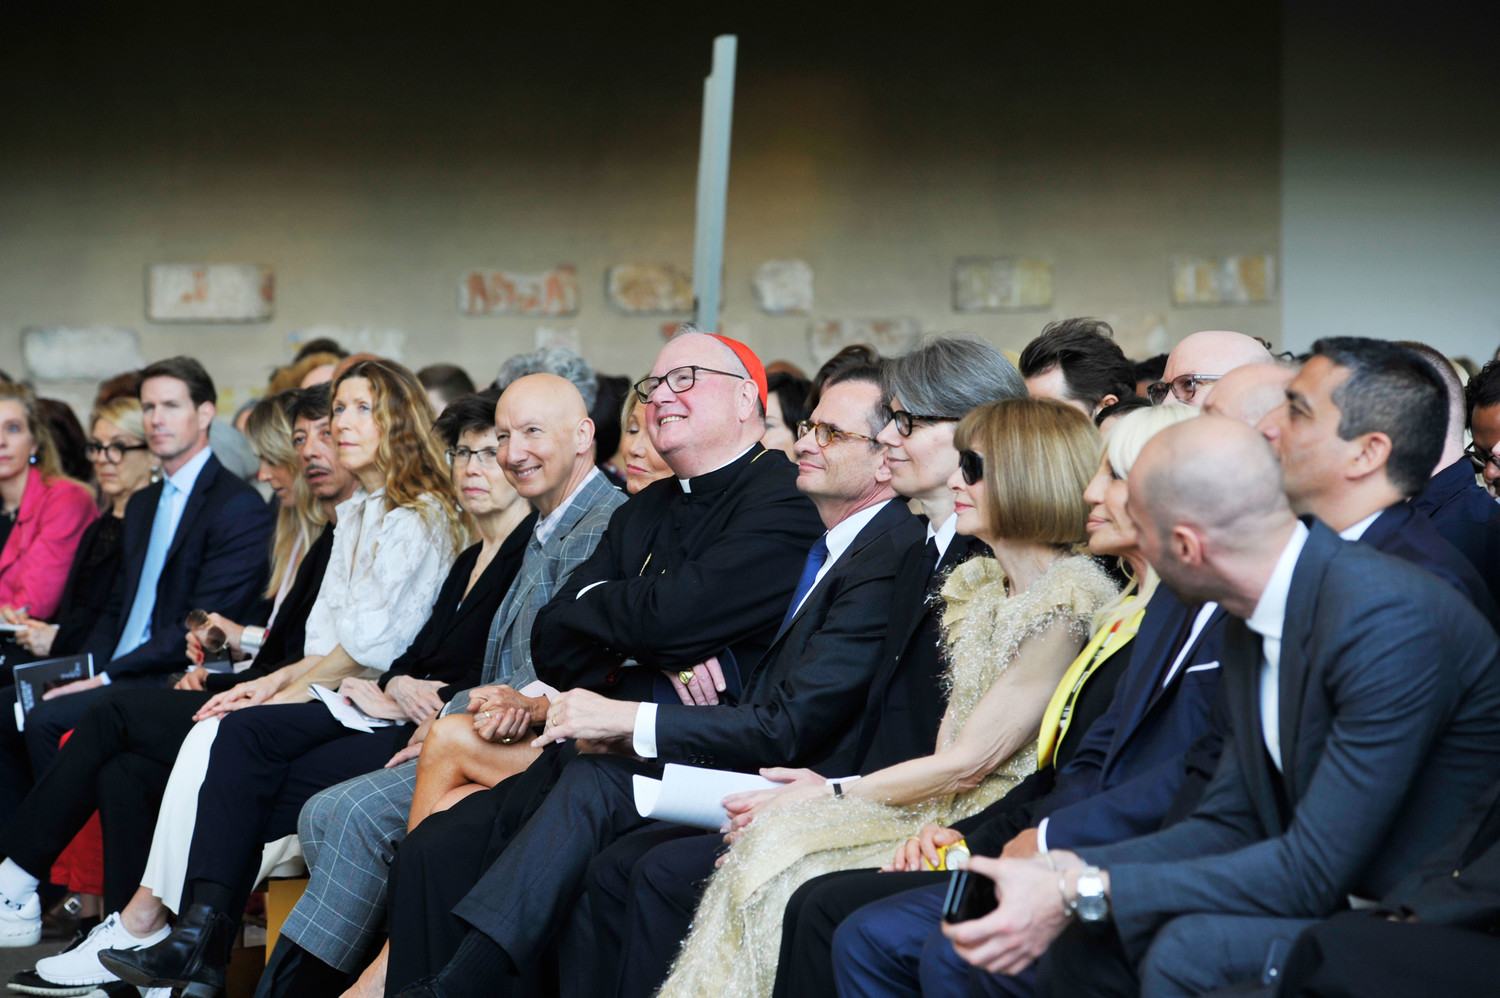 Cardinal Dolan sits in the front row with Christine Schwarzman, to his left, co-chair of the exhibit along with her husband, Stephen A. Schwarzman. To the cardinal's right were Dr. Daniel H. Weiss, president and CEO of the Metropolitan Museum of Art; Andrew Bolton, curator in charge, the Costume Institute; Anna Wintour, editor-in-chief of Vogue magazine; and Donatella Versace, a fashion designer.